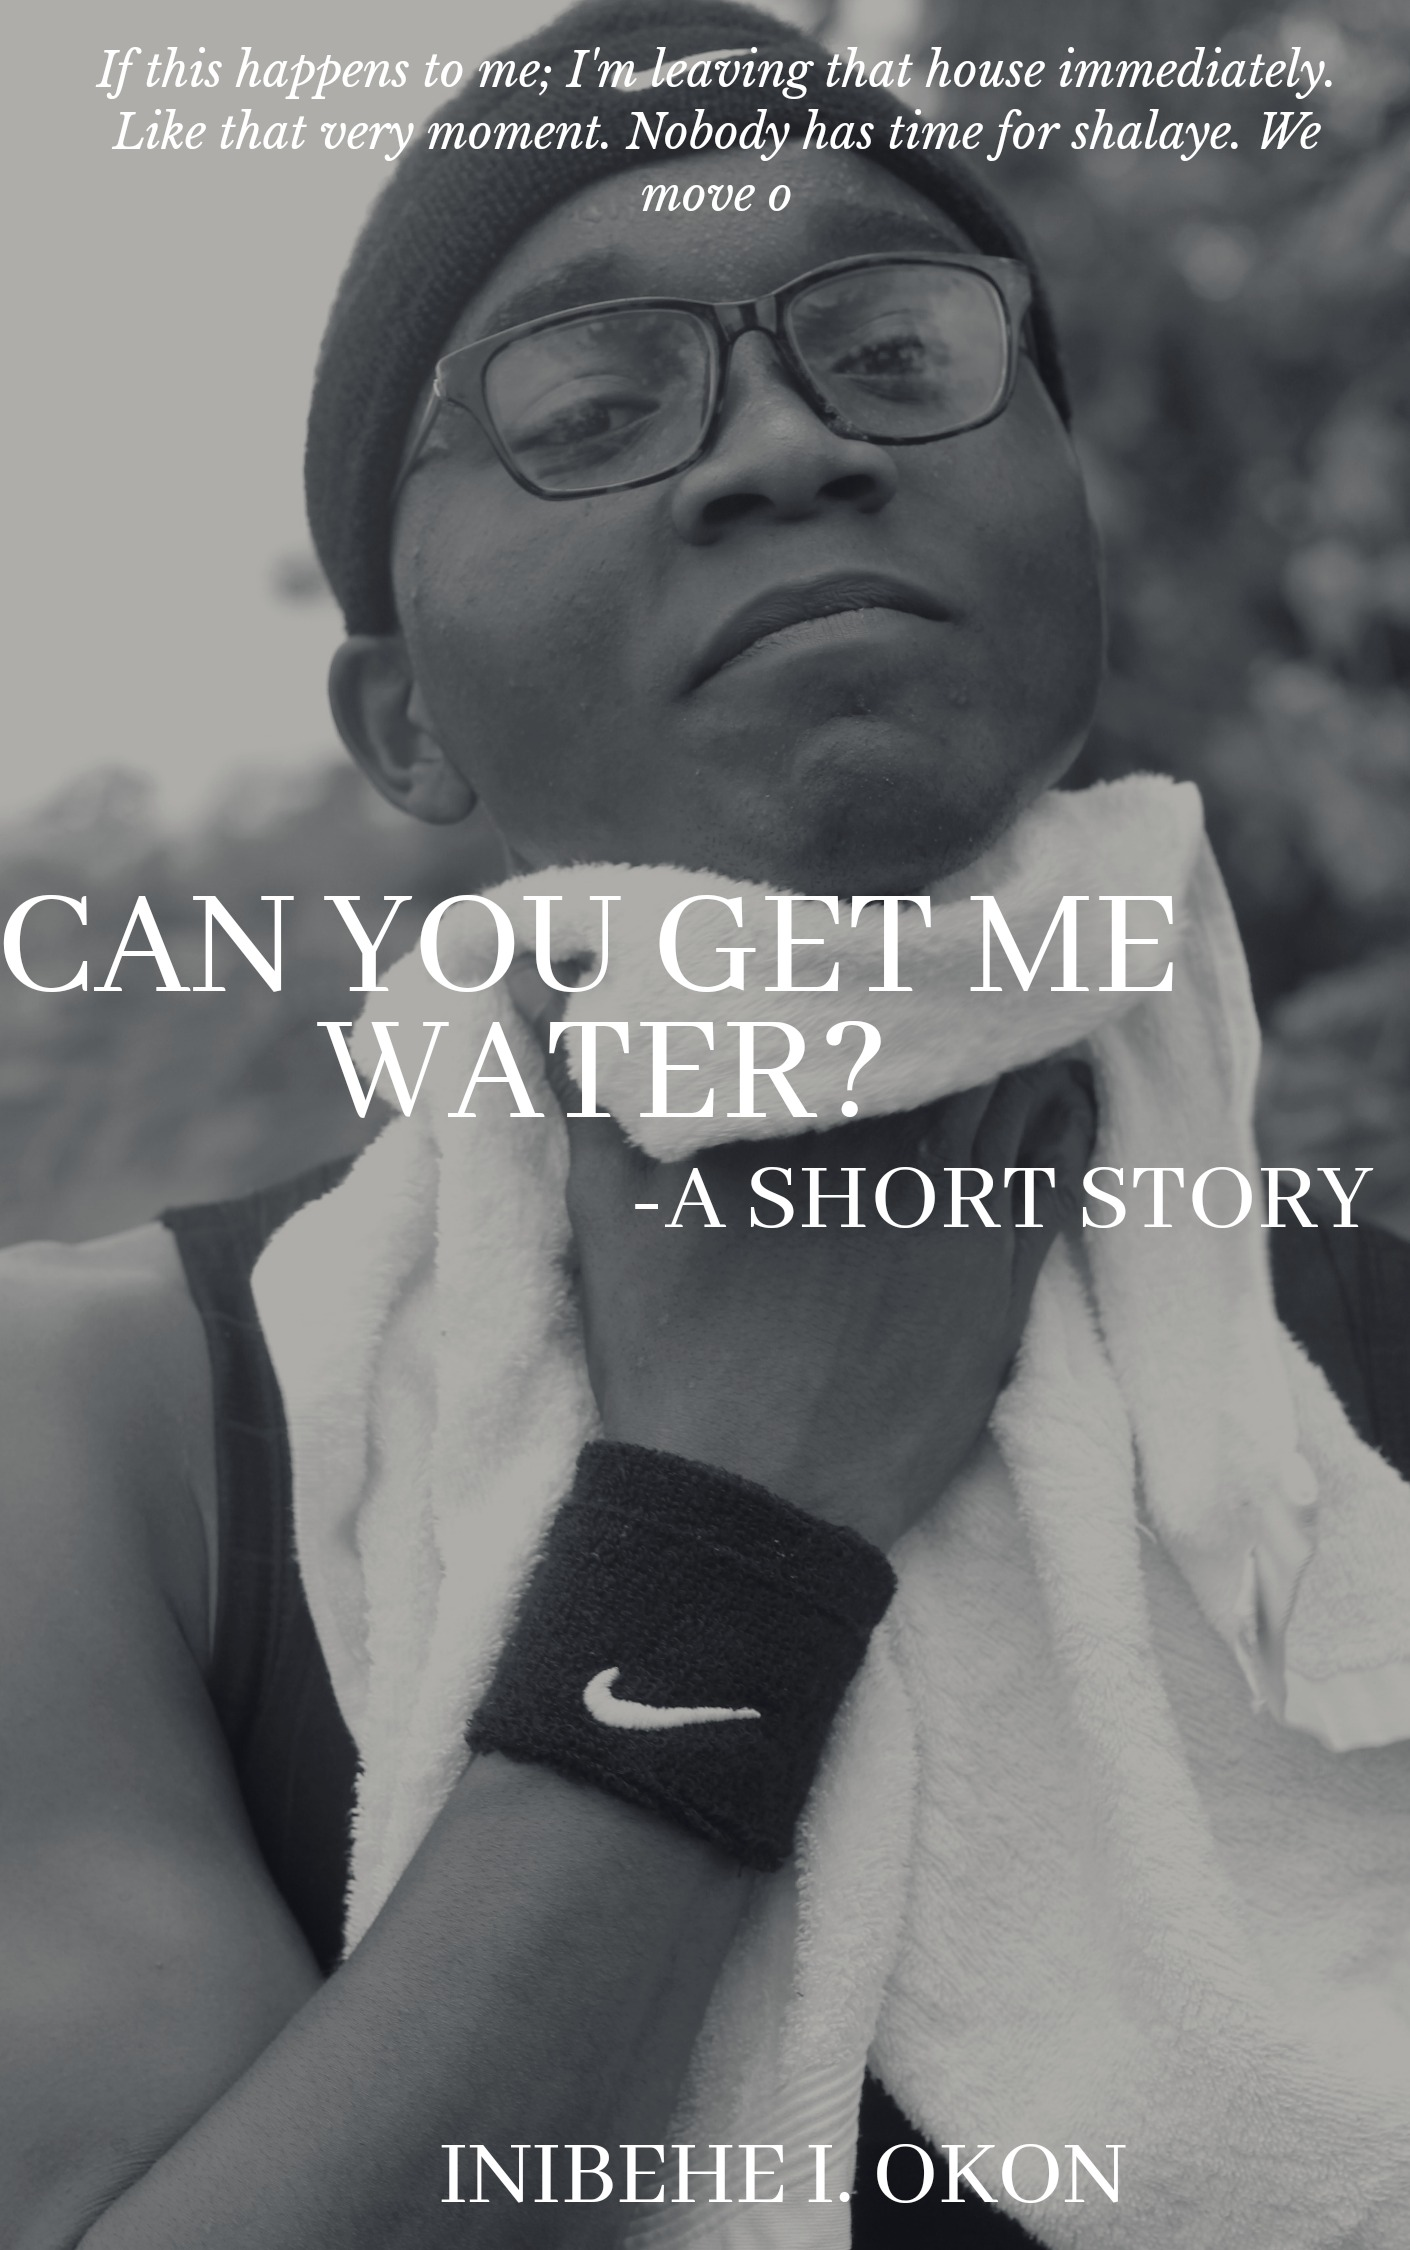 CAN YOU GET ME WATER?